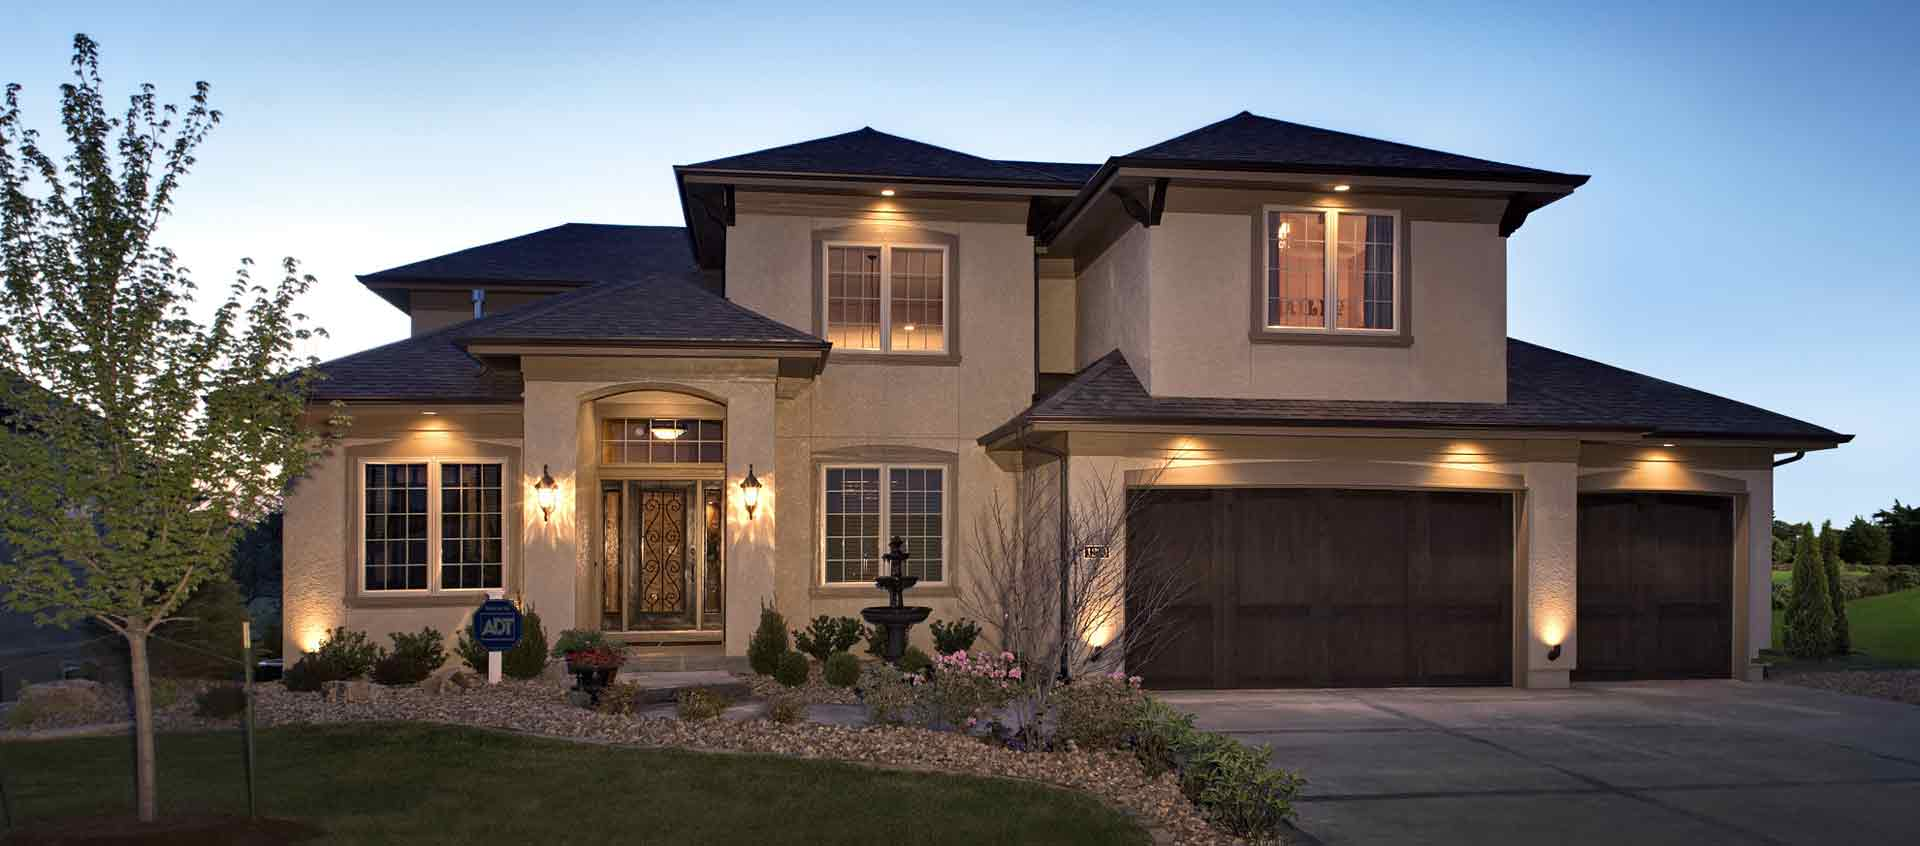 home security Make your home a smart home with vivint's complete security and automation solutions shop now and save big call 855-832-1550.